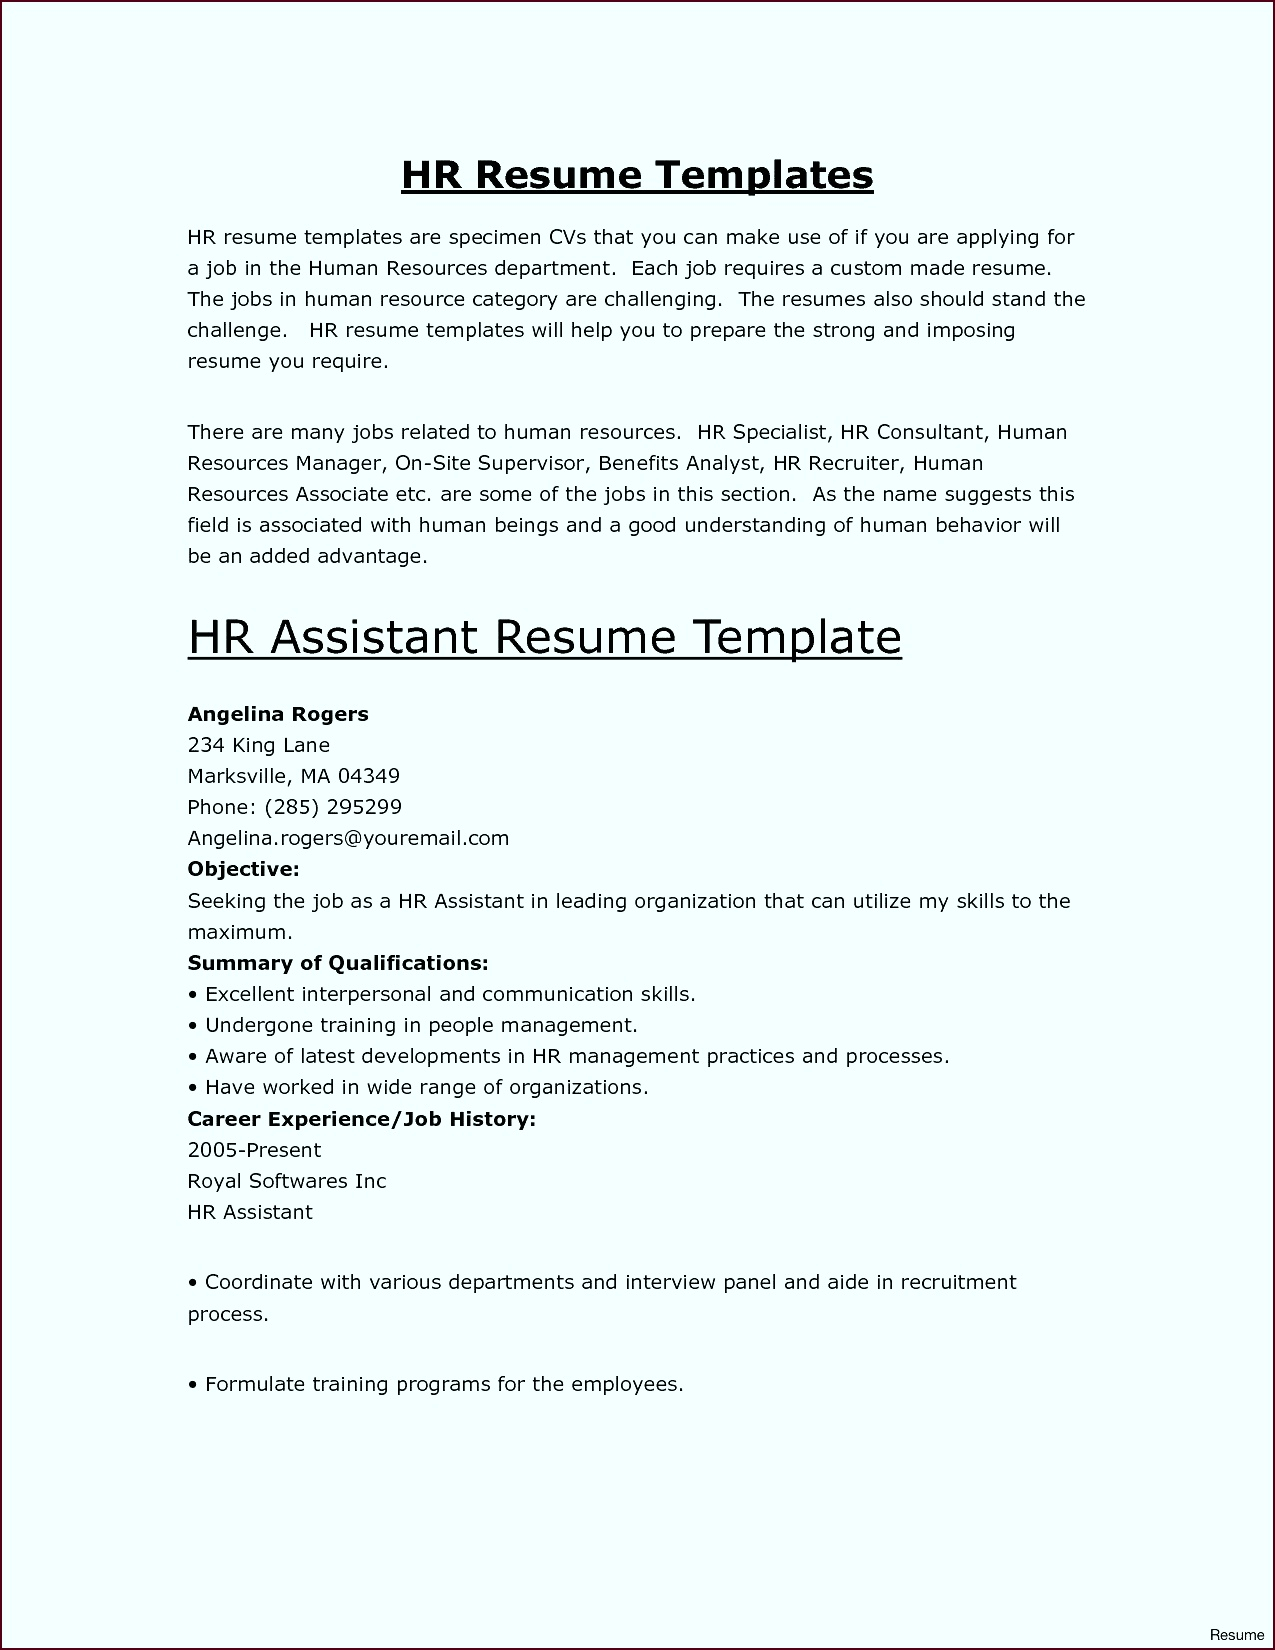 Letter Of Resignation Template Word 2007 Samples Letter Templates